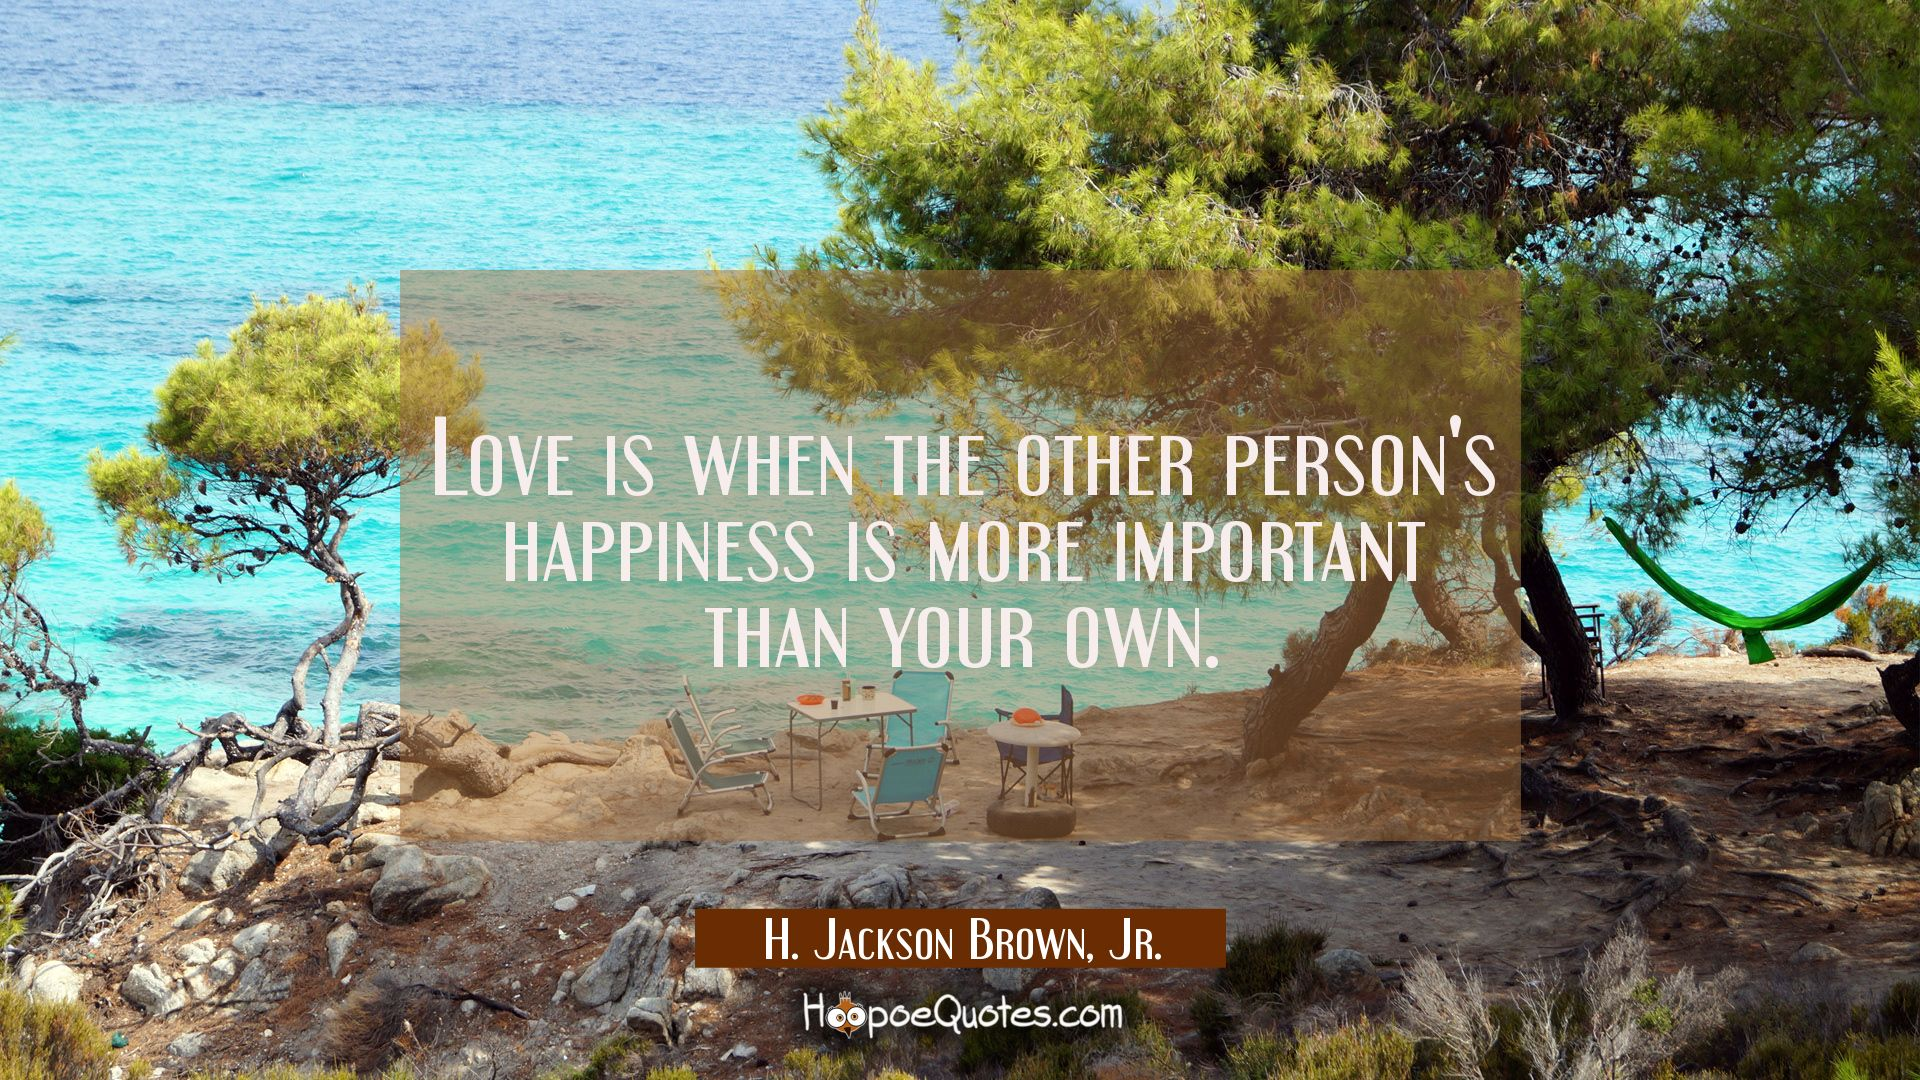 Quote Of The Day   Love Is When The Other Personu0027s Happiness Is More  Important Than